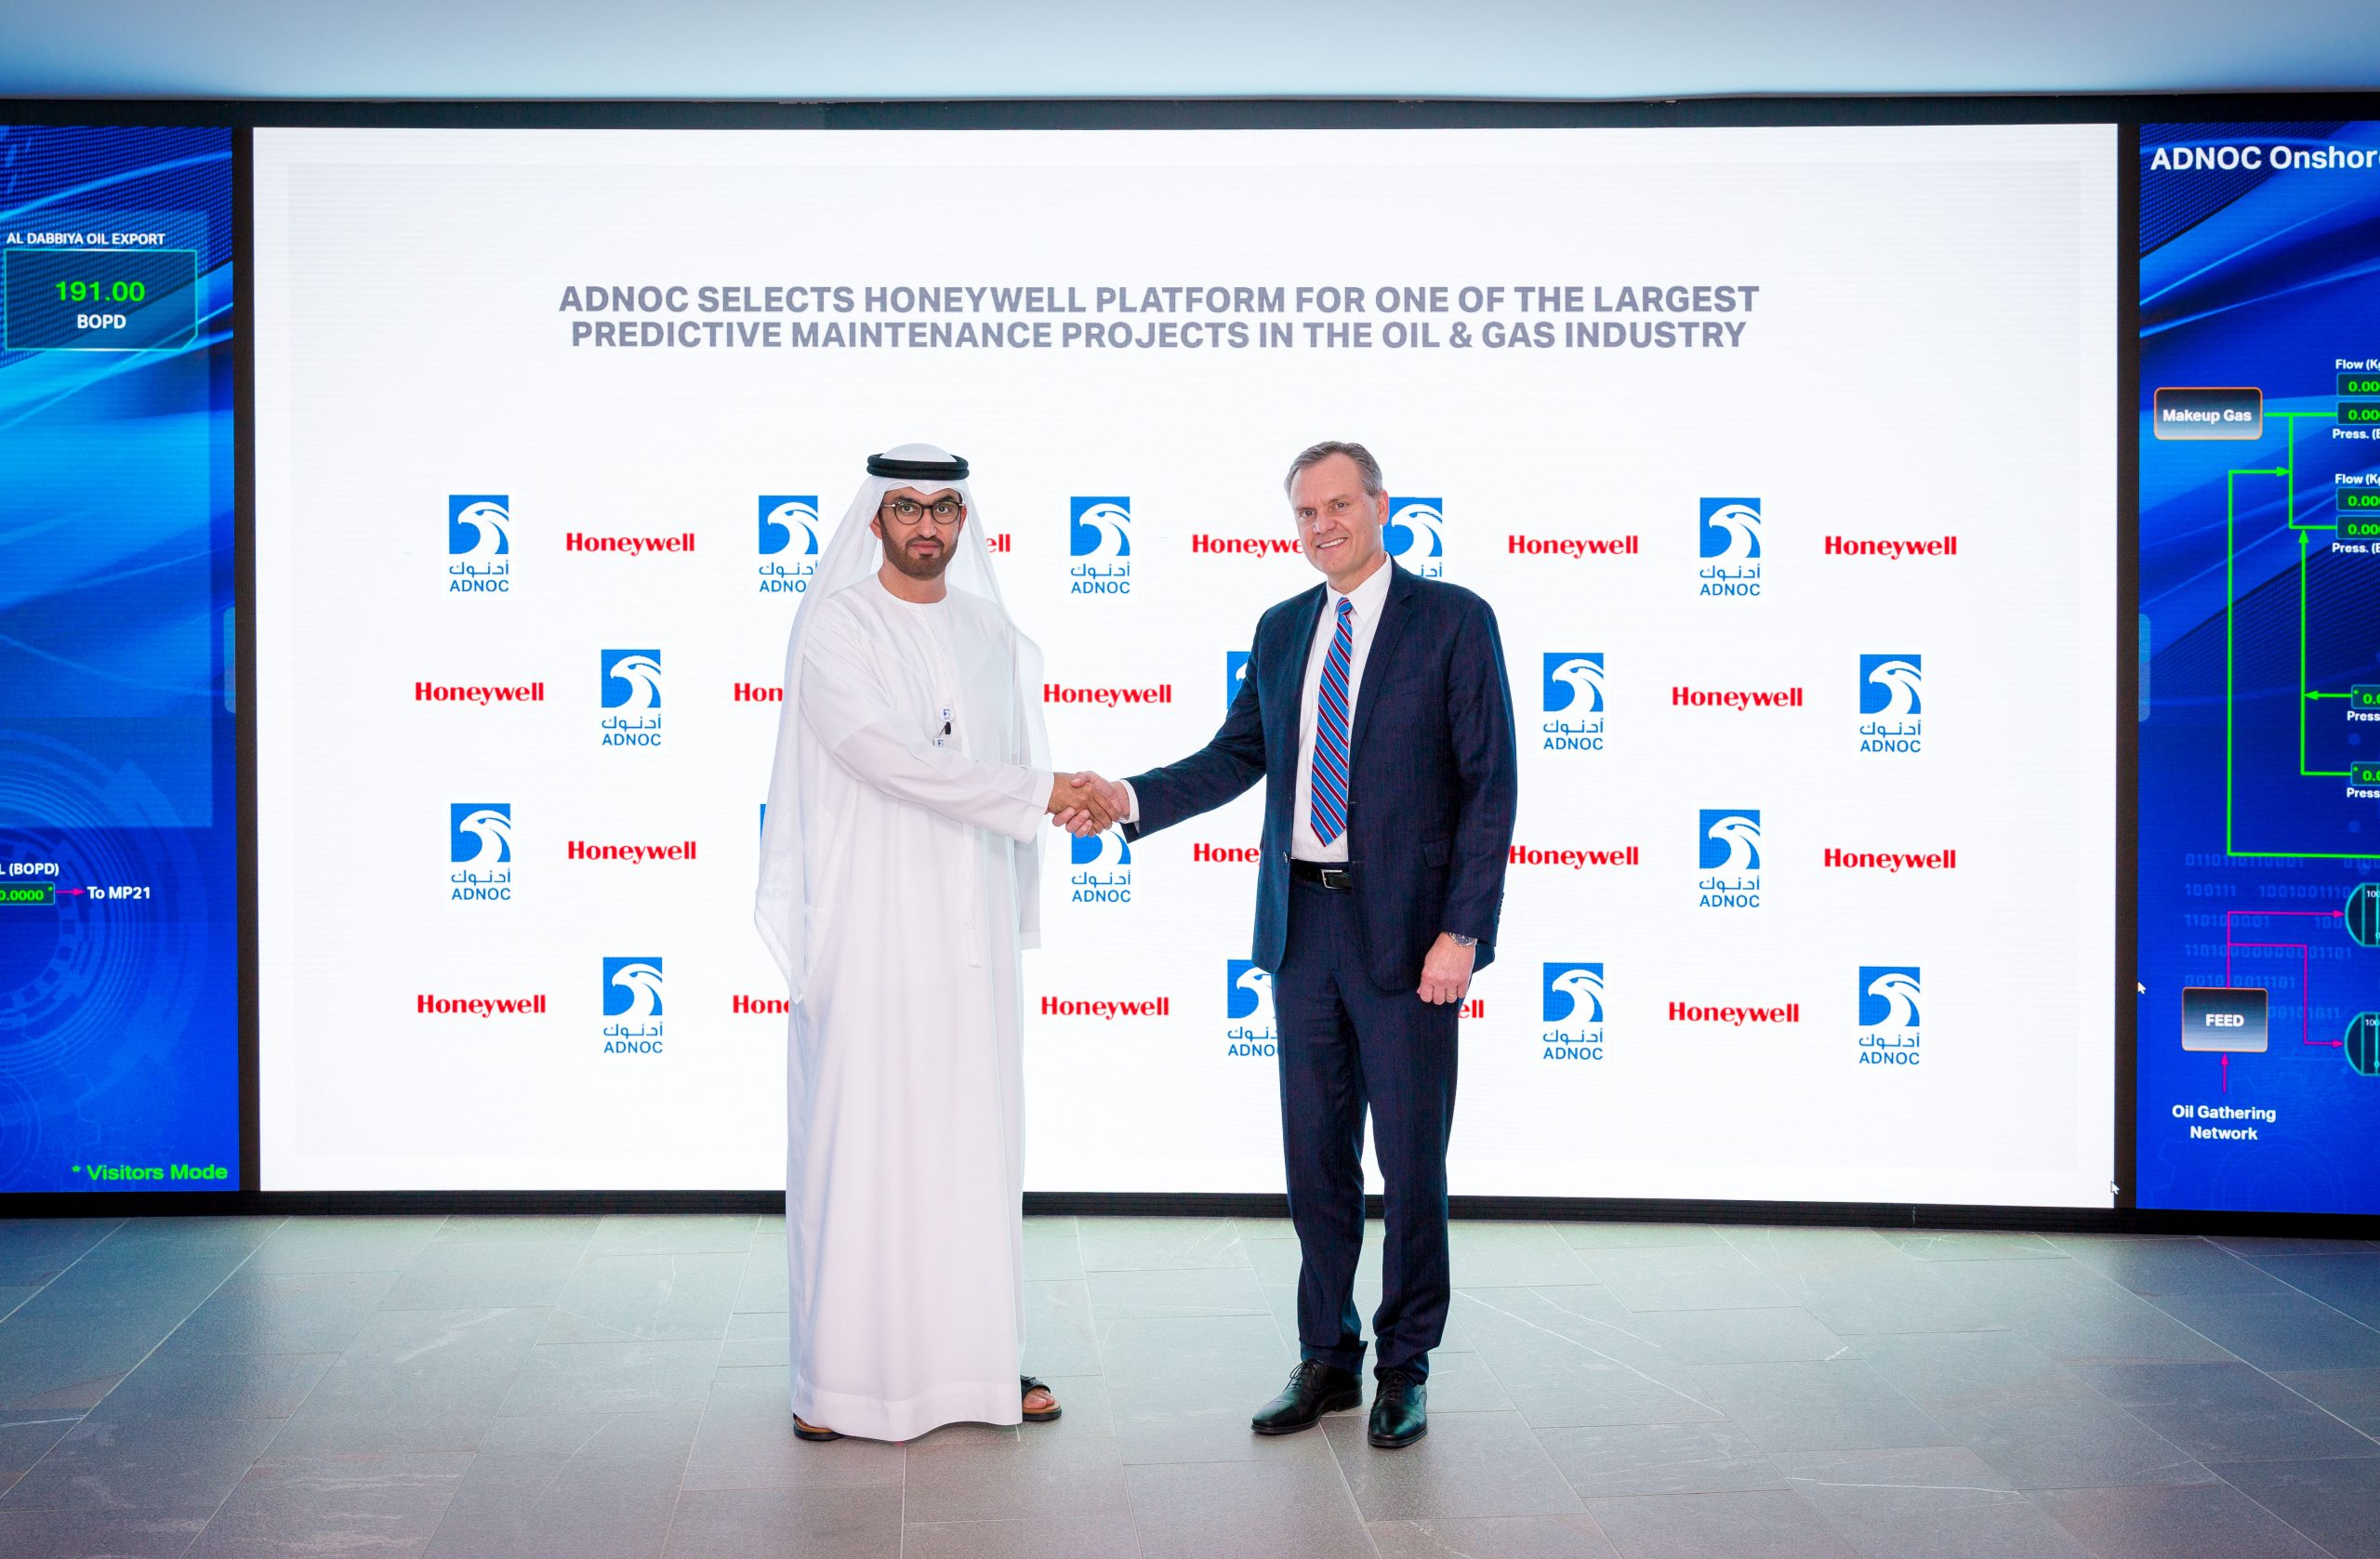 Adnoc selects honeywell platform for one of the largest predictive maintenance projects in the oil and gas industry